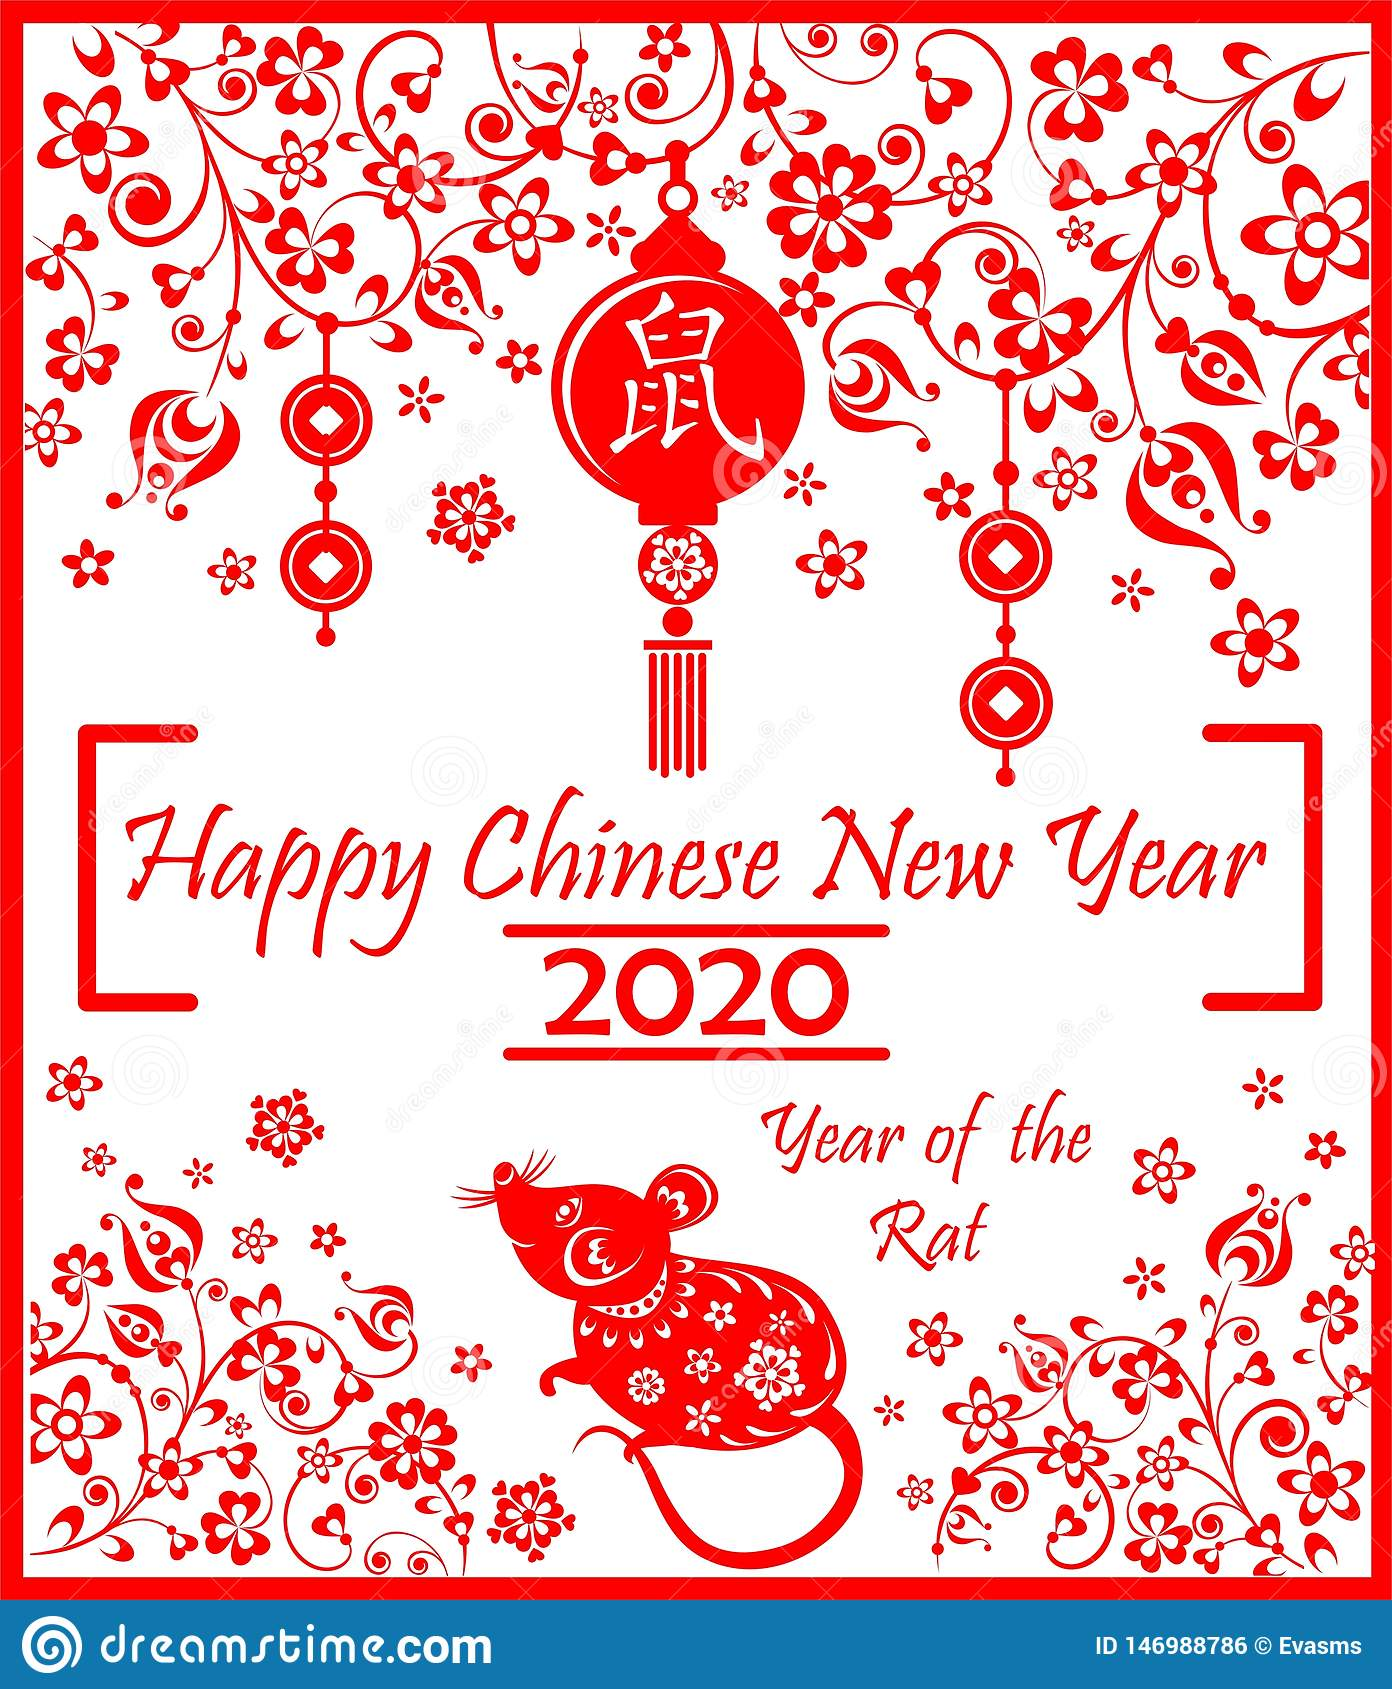 Happy Chinese New Year 2020 Year Of The White Rat Greeting ...